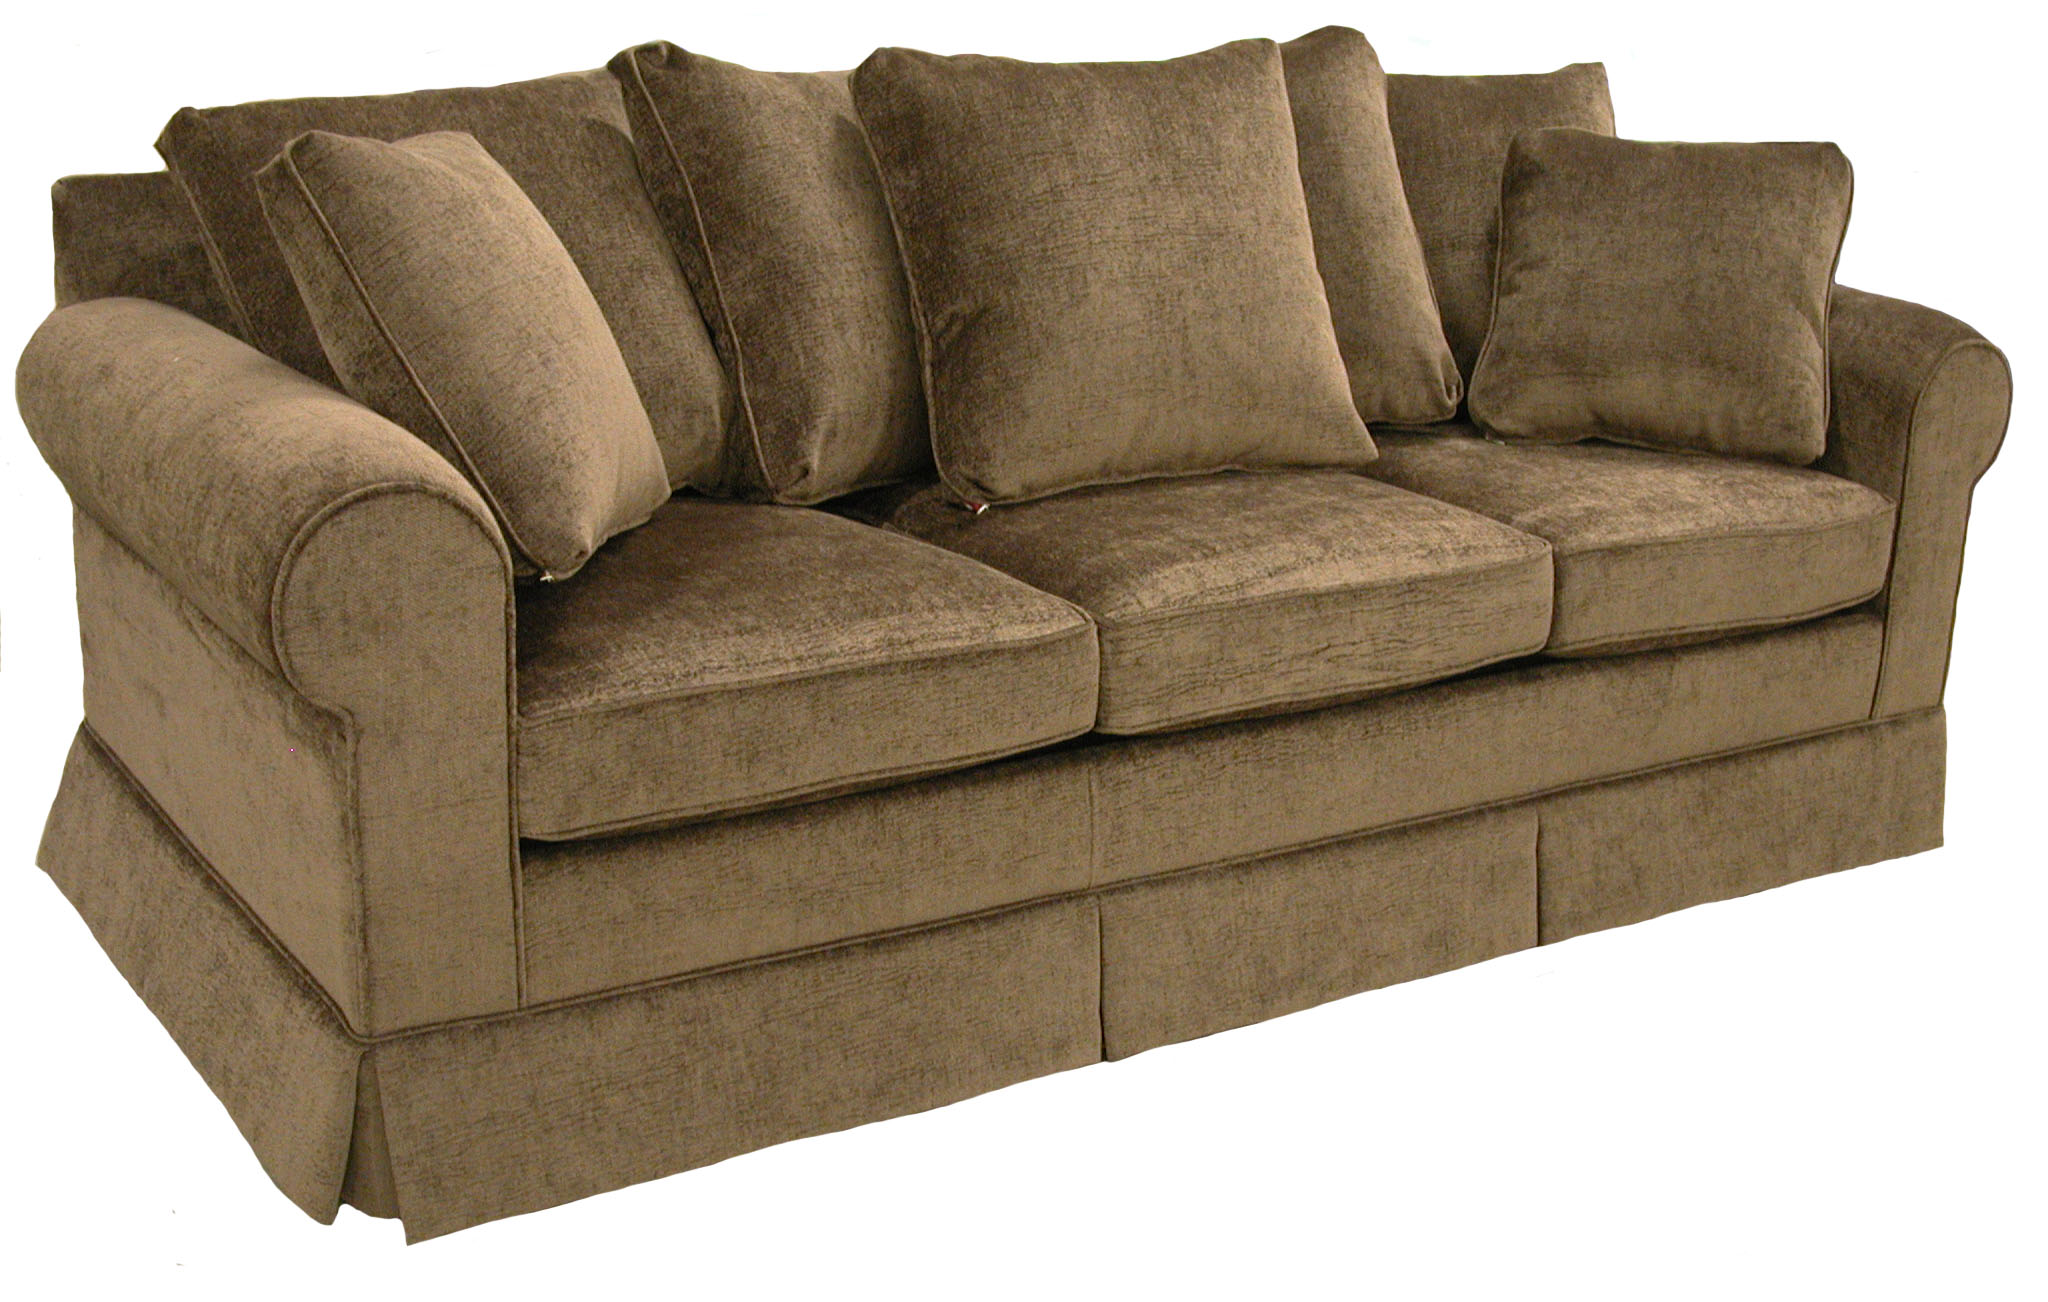 american made sofa sleepers gold chenille marquis queen sleeper couch carolina chair